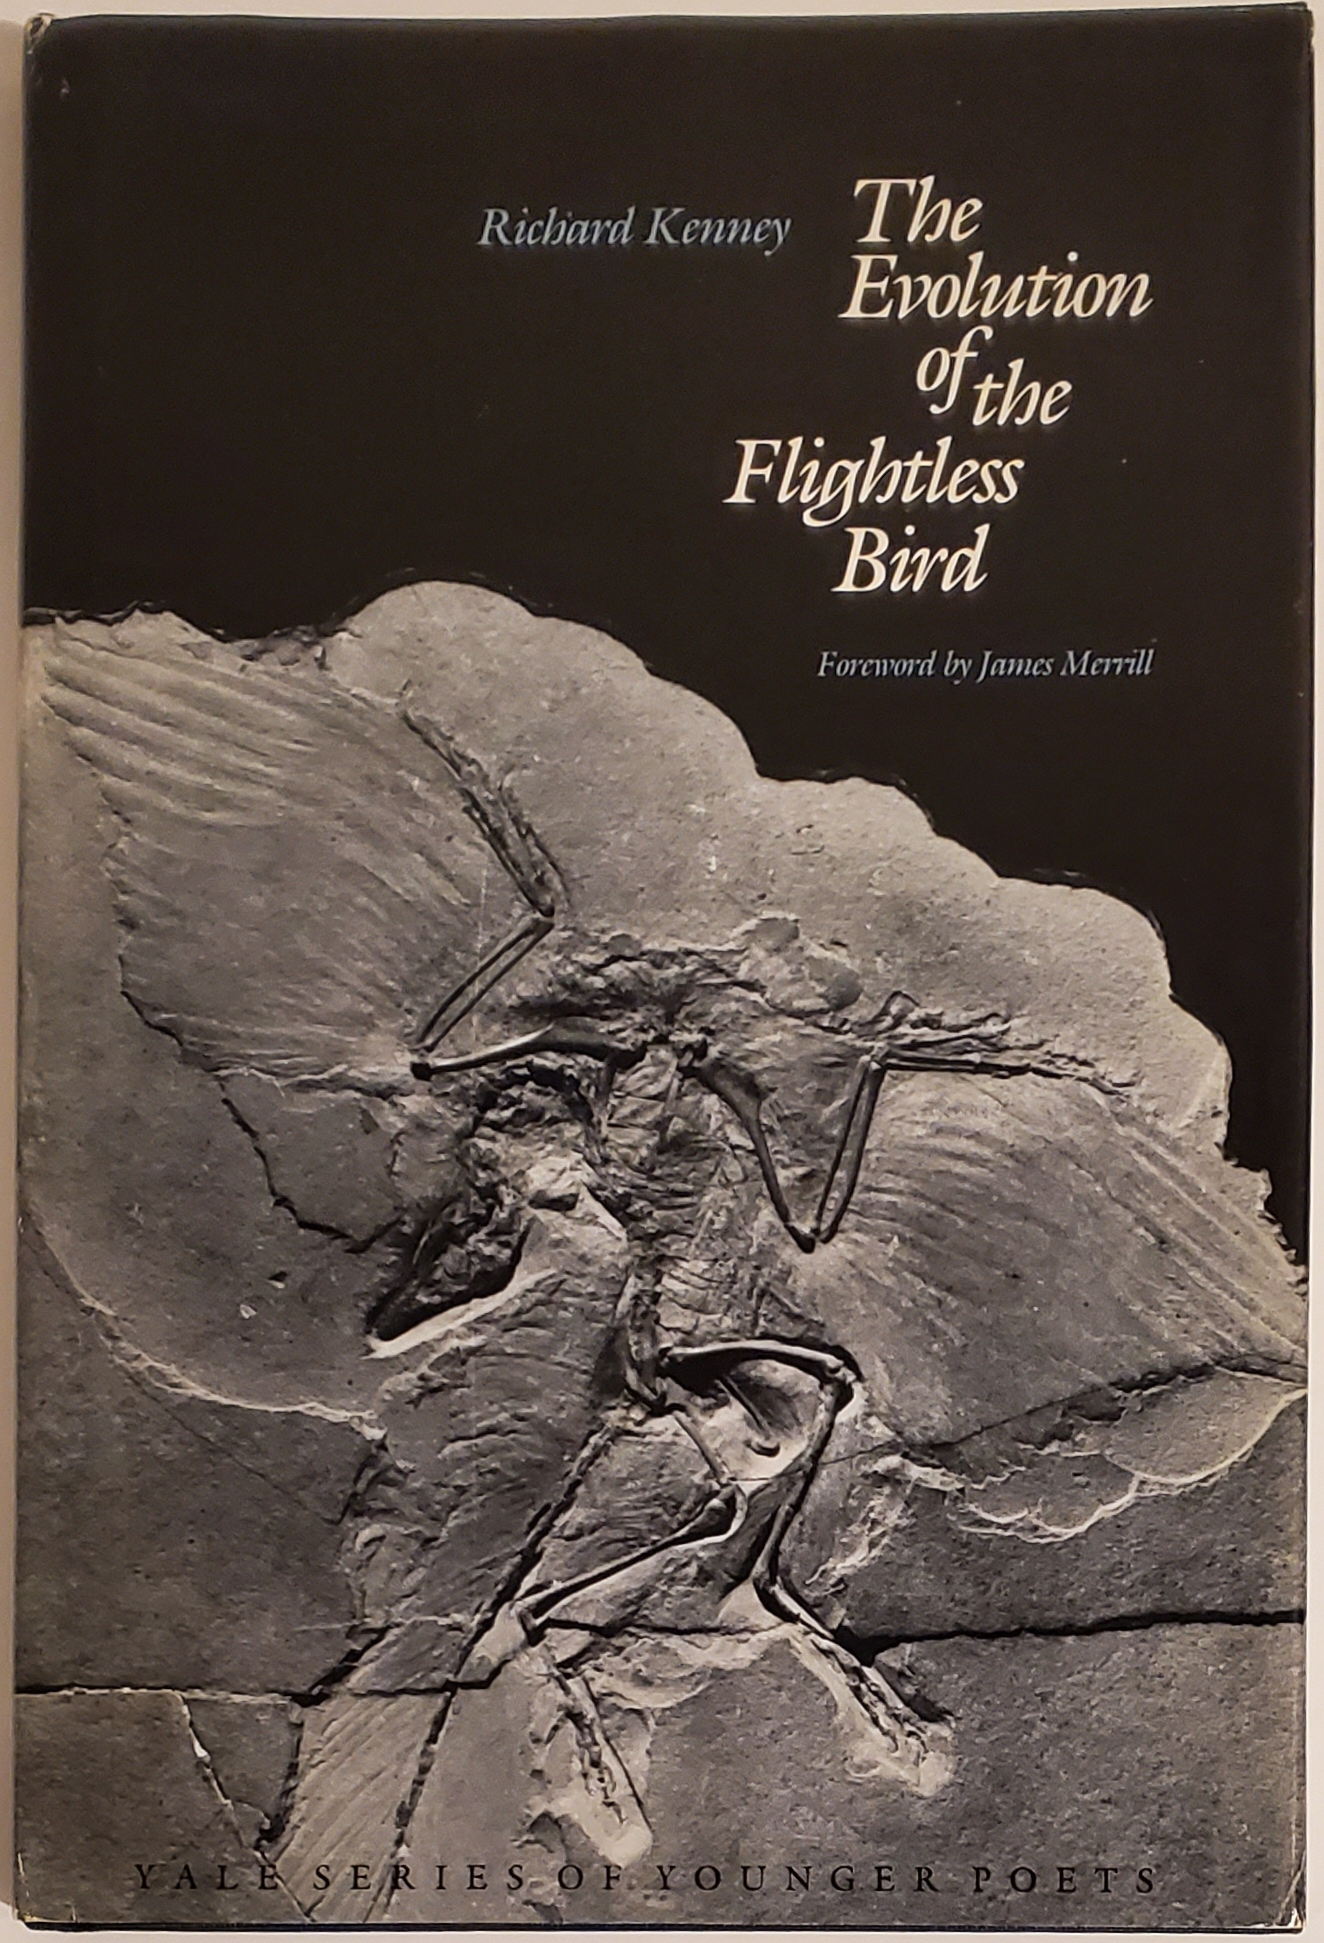 THE EVOLUTION OF THE FLIGHTLESS BIRD. Foreword by James Merrill. Richard Kenney.